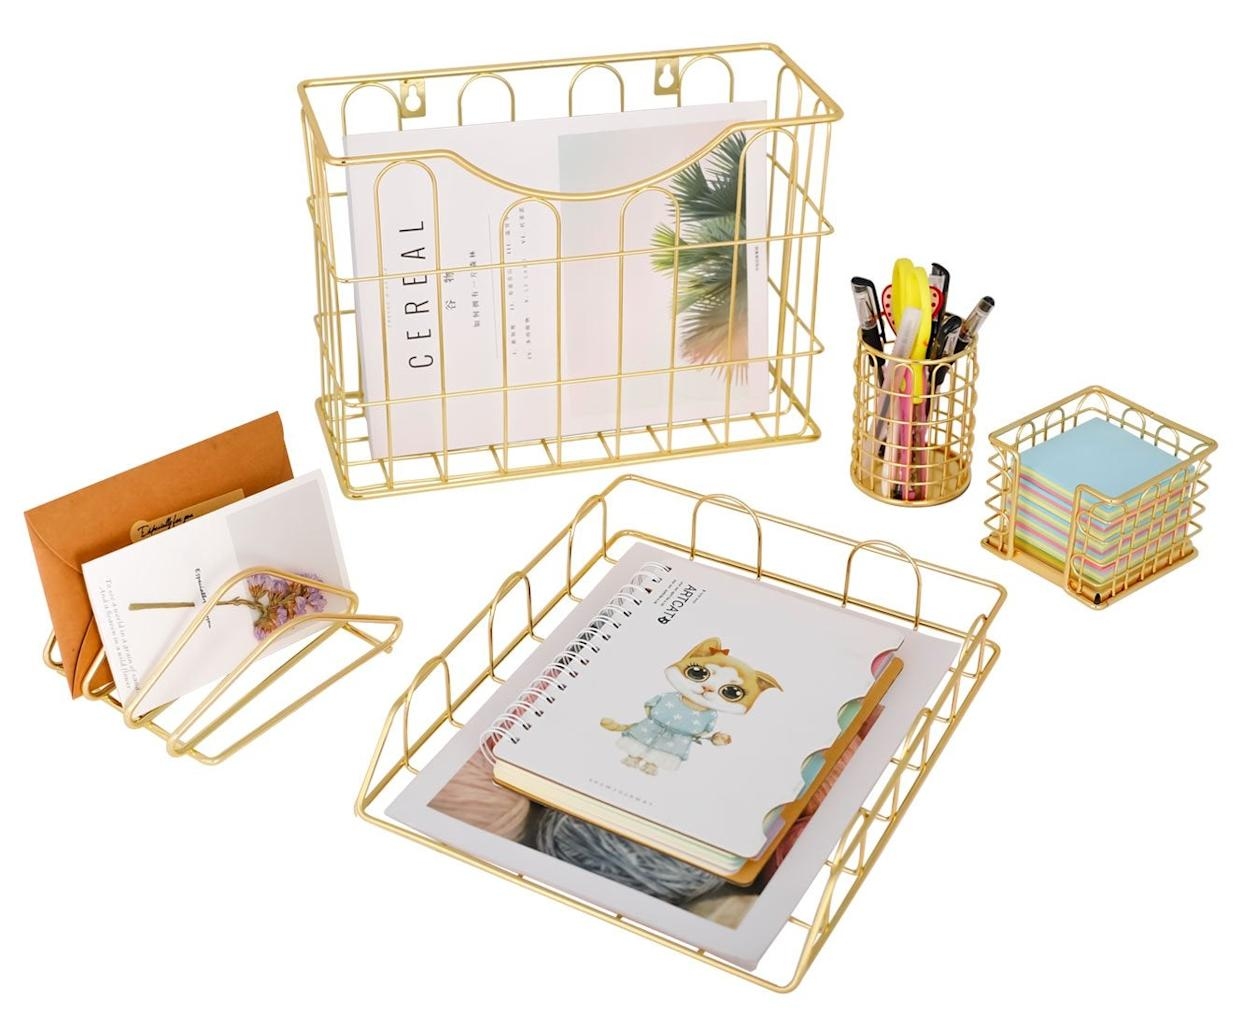 Superbpag Office 5 in 1 Desk Organizer Set